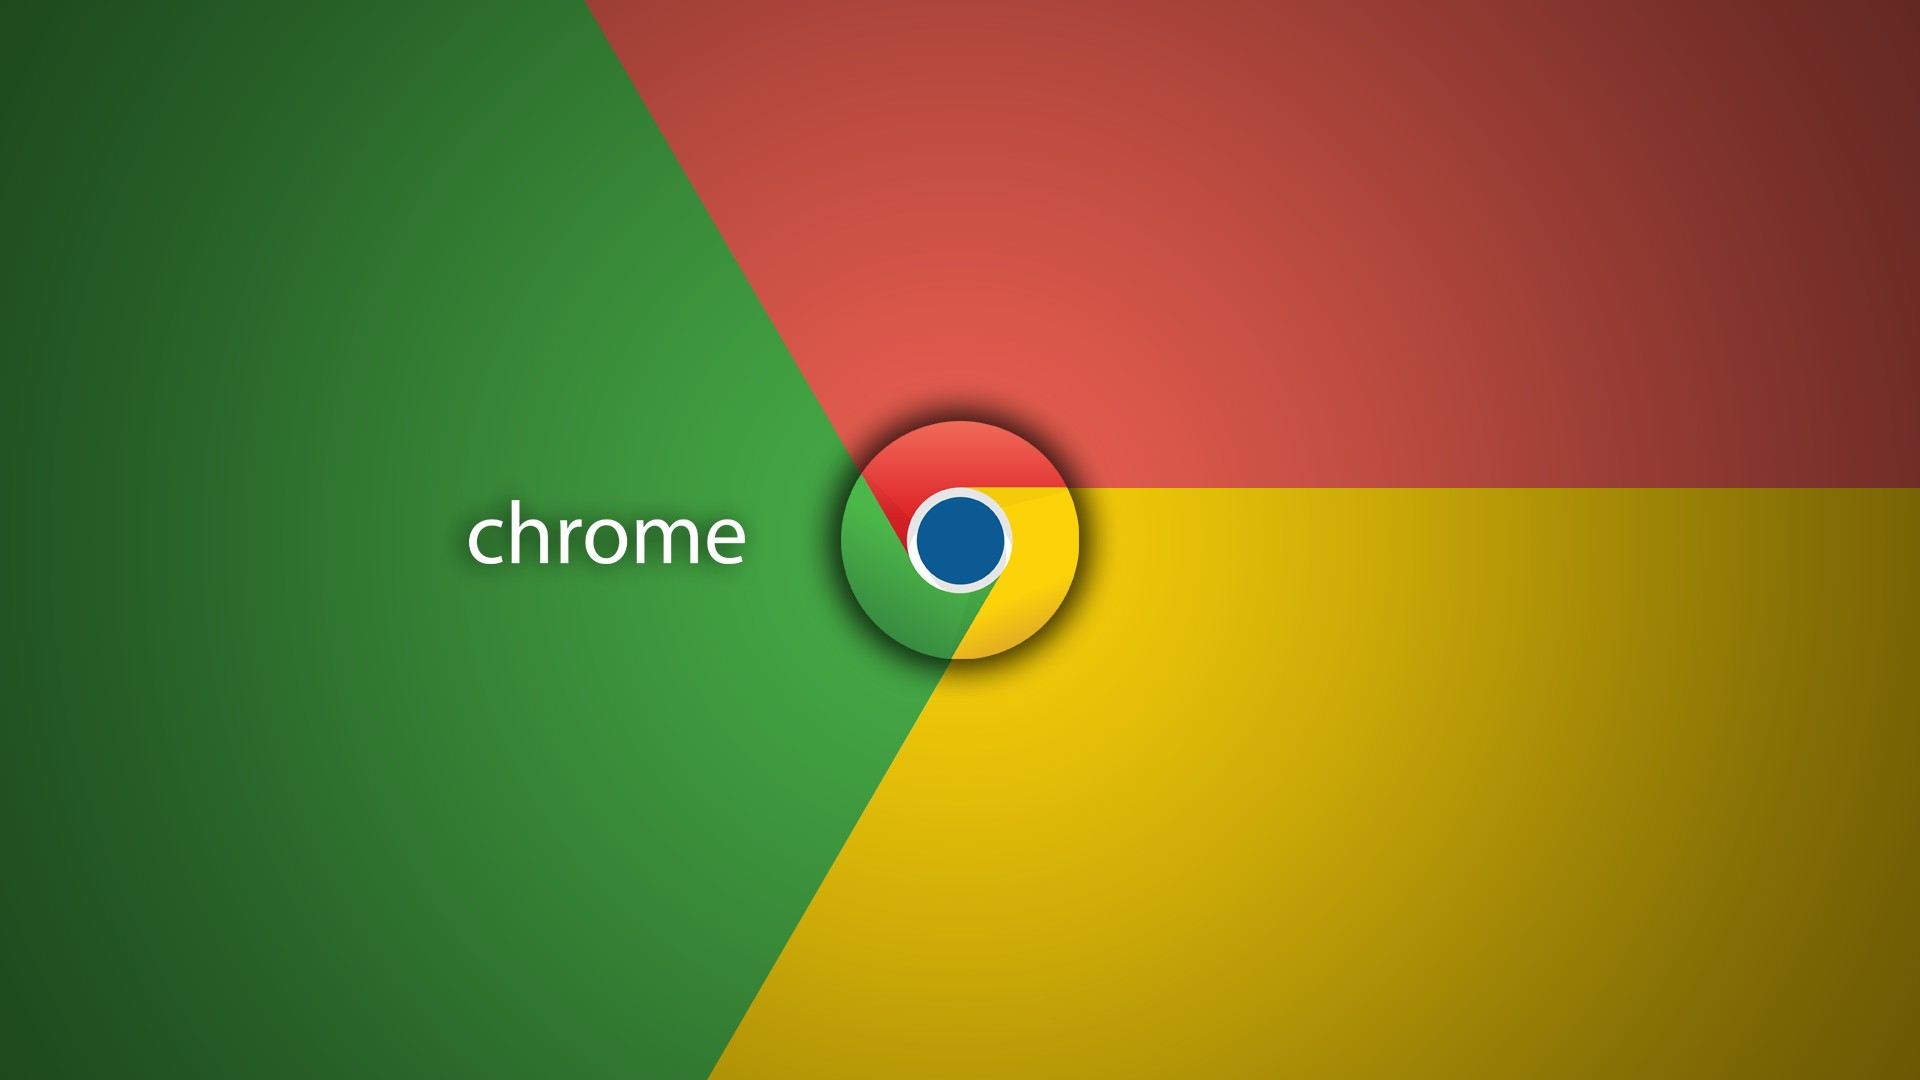 Cool Apple Related Pics Google Search: Chrome Wallpaper ·① Download Free Amazing Full HD